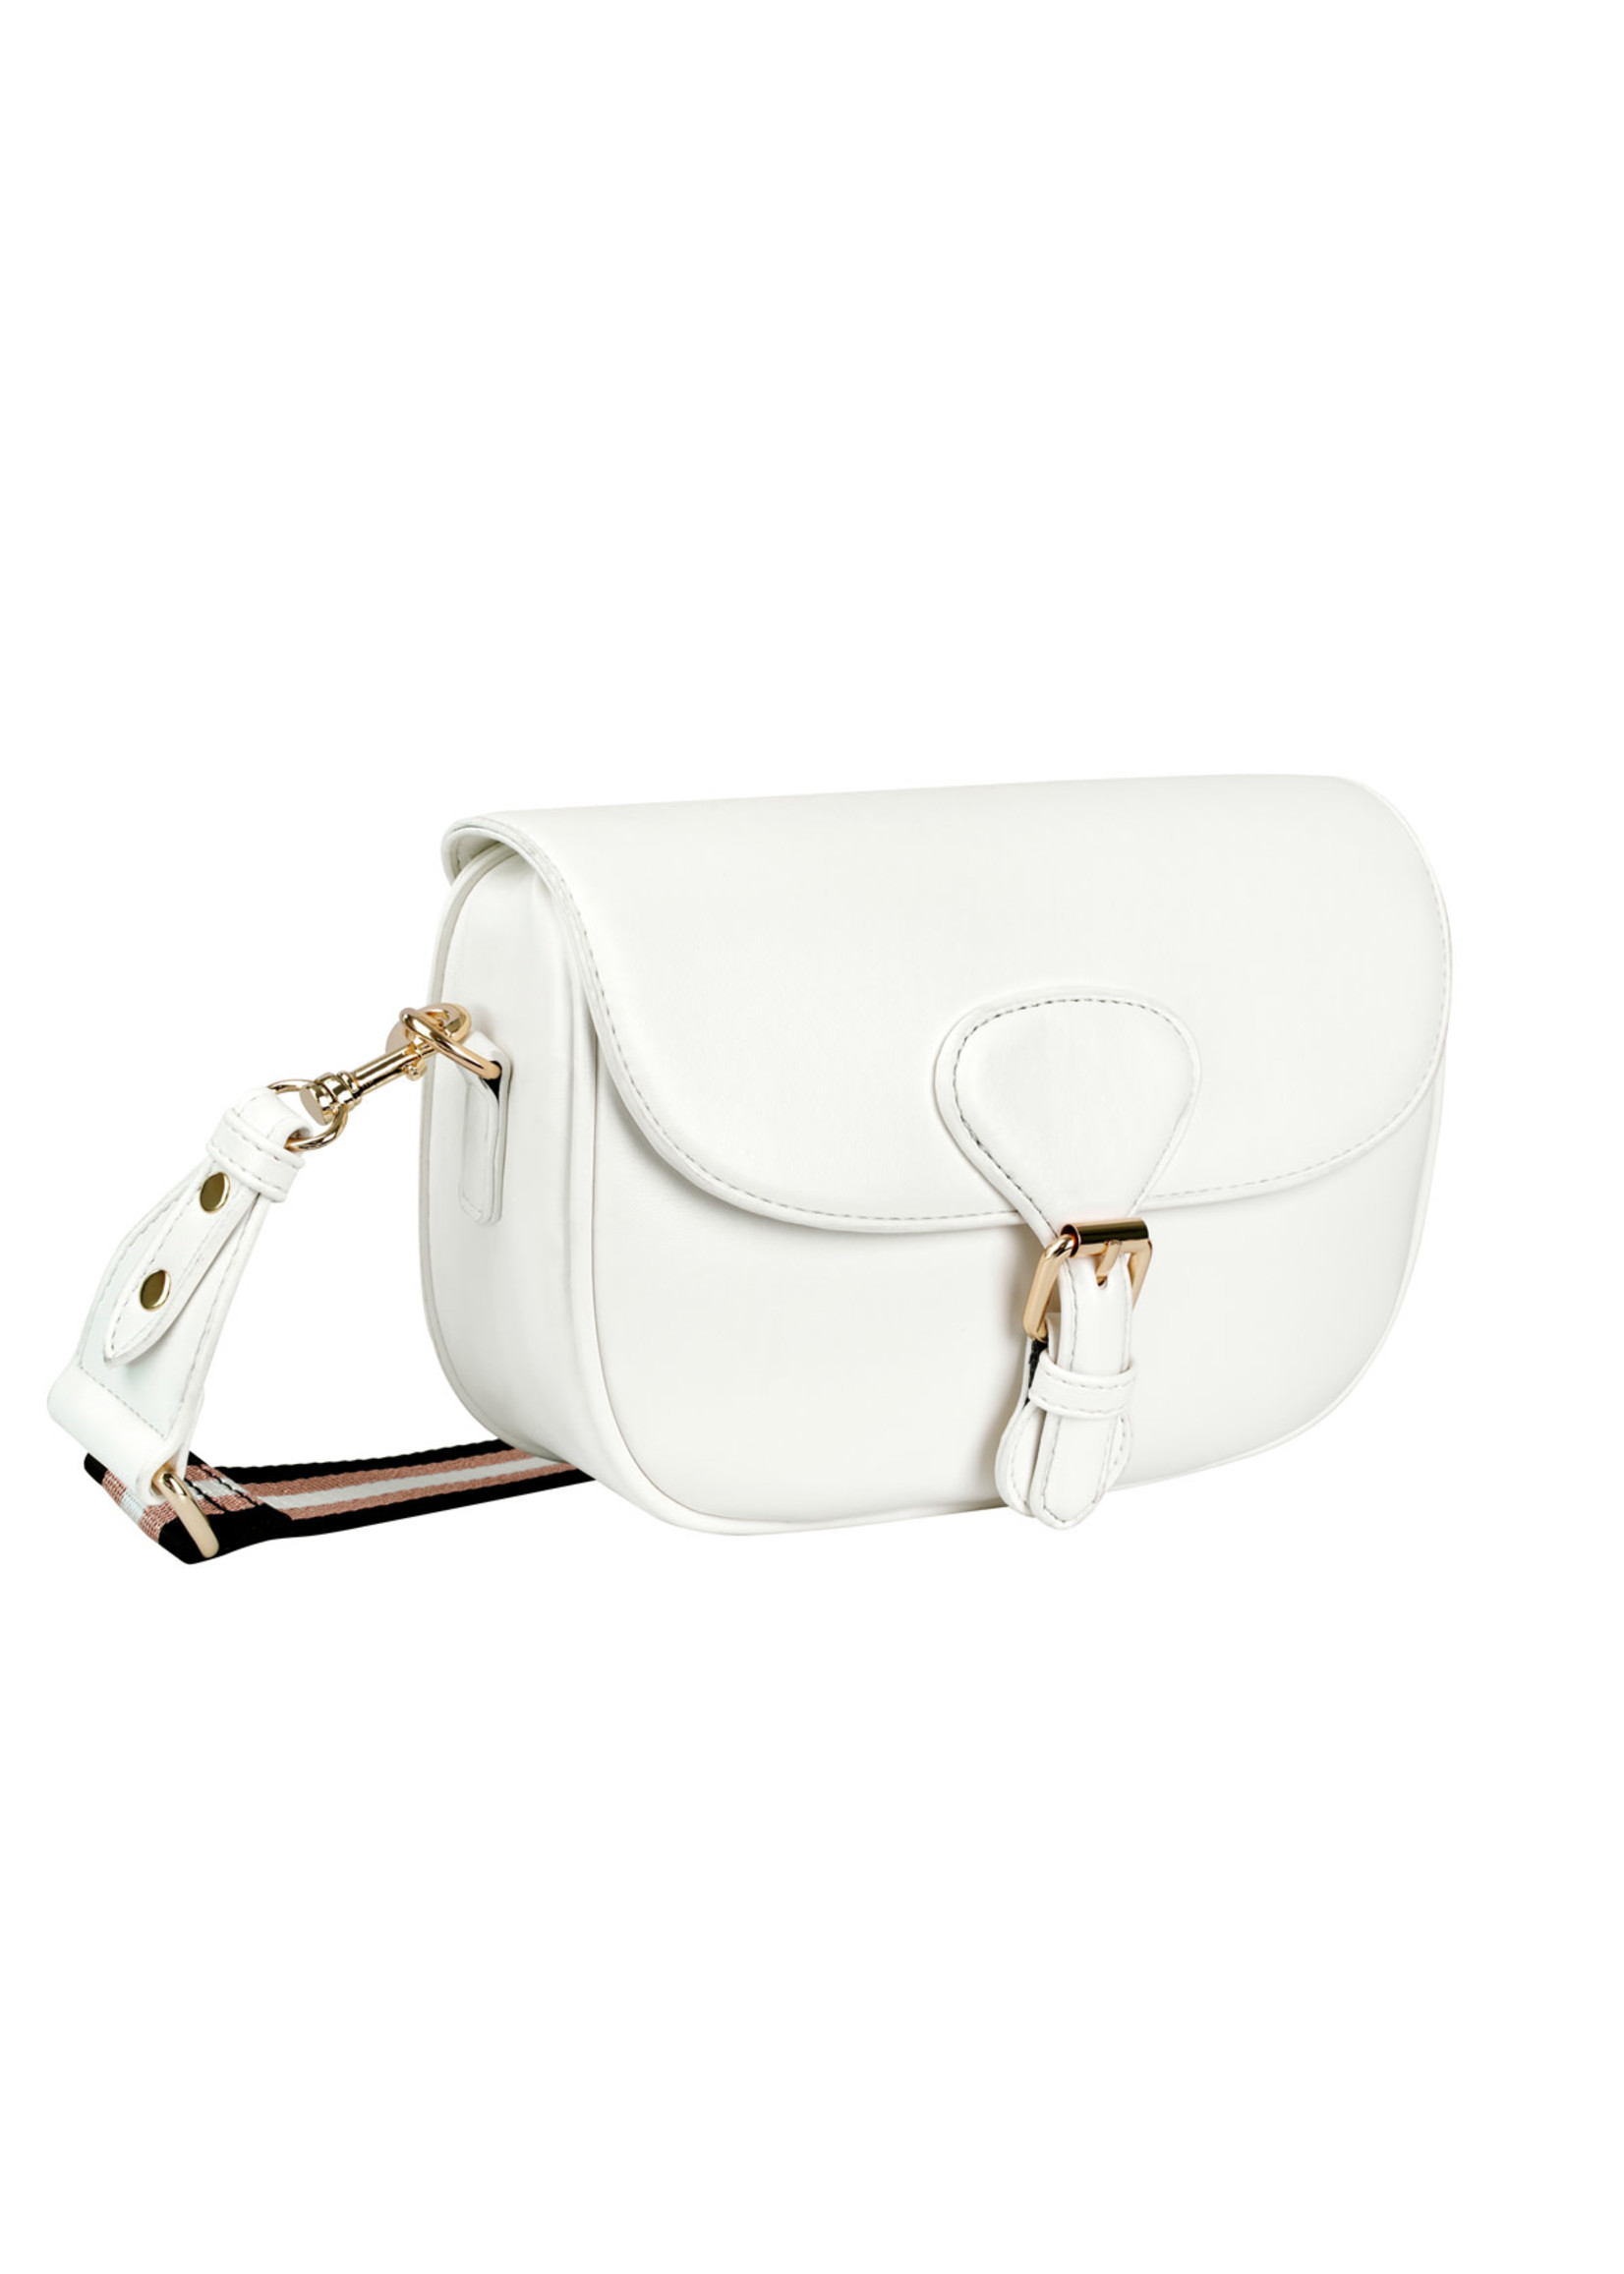 Ladybugs PU bag with buckle closure and striped wide strap